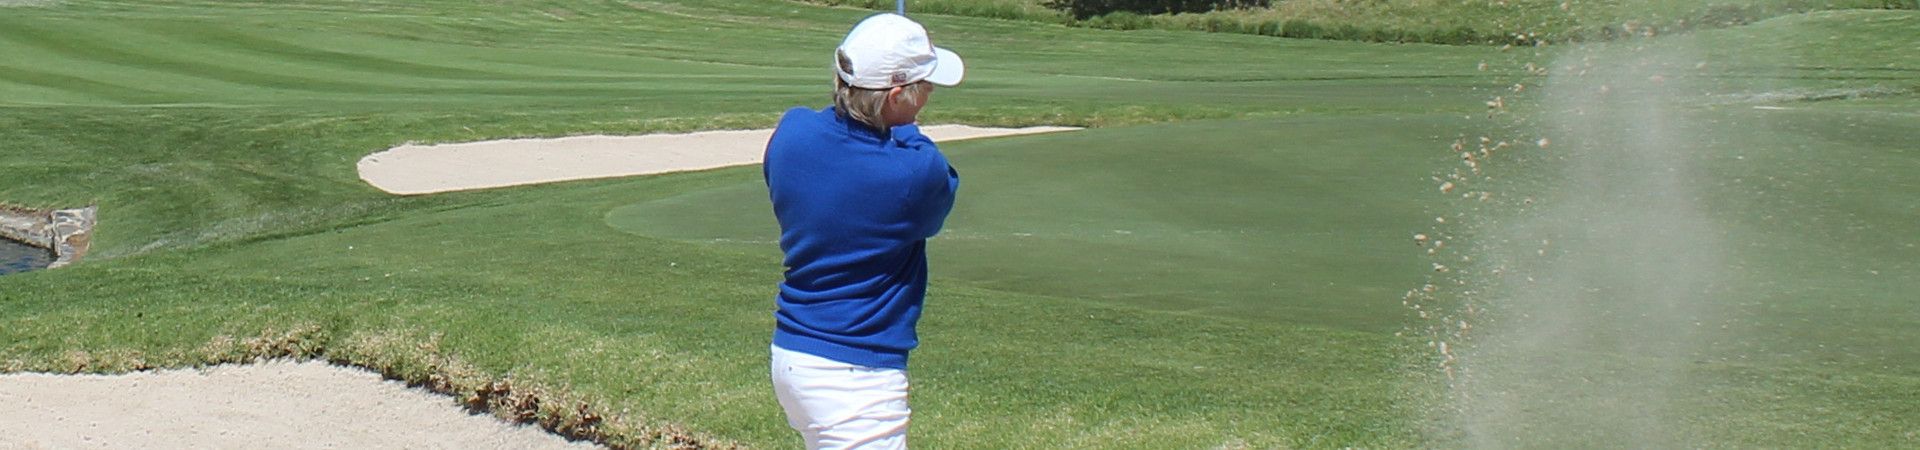 Sally Little hitting a golf ball out of the sand trap